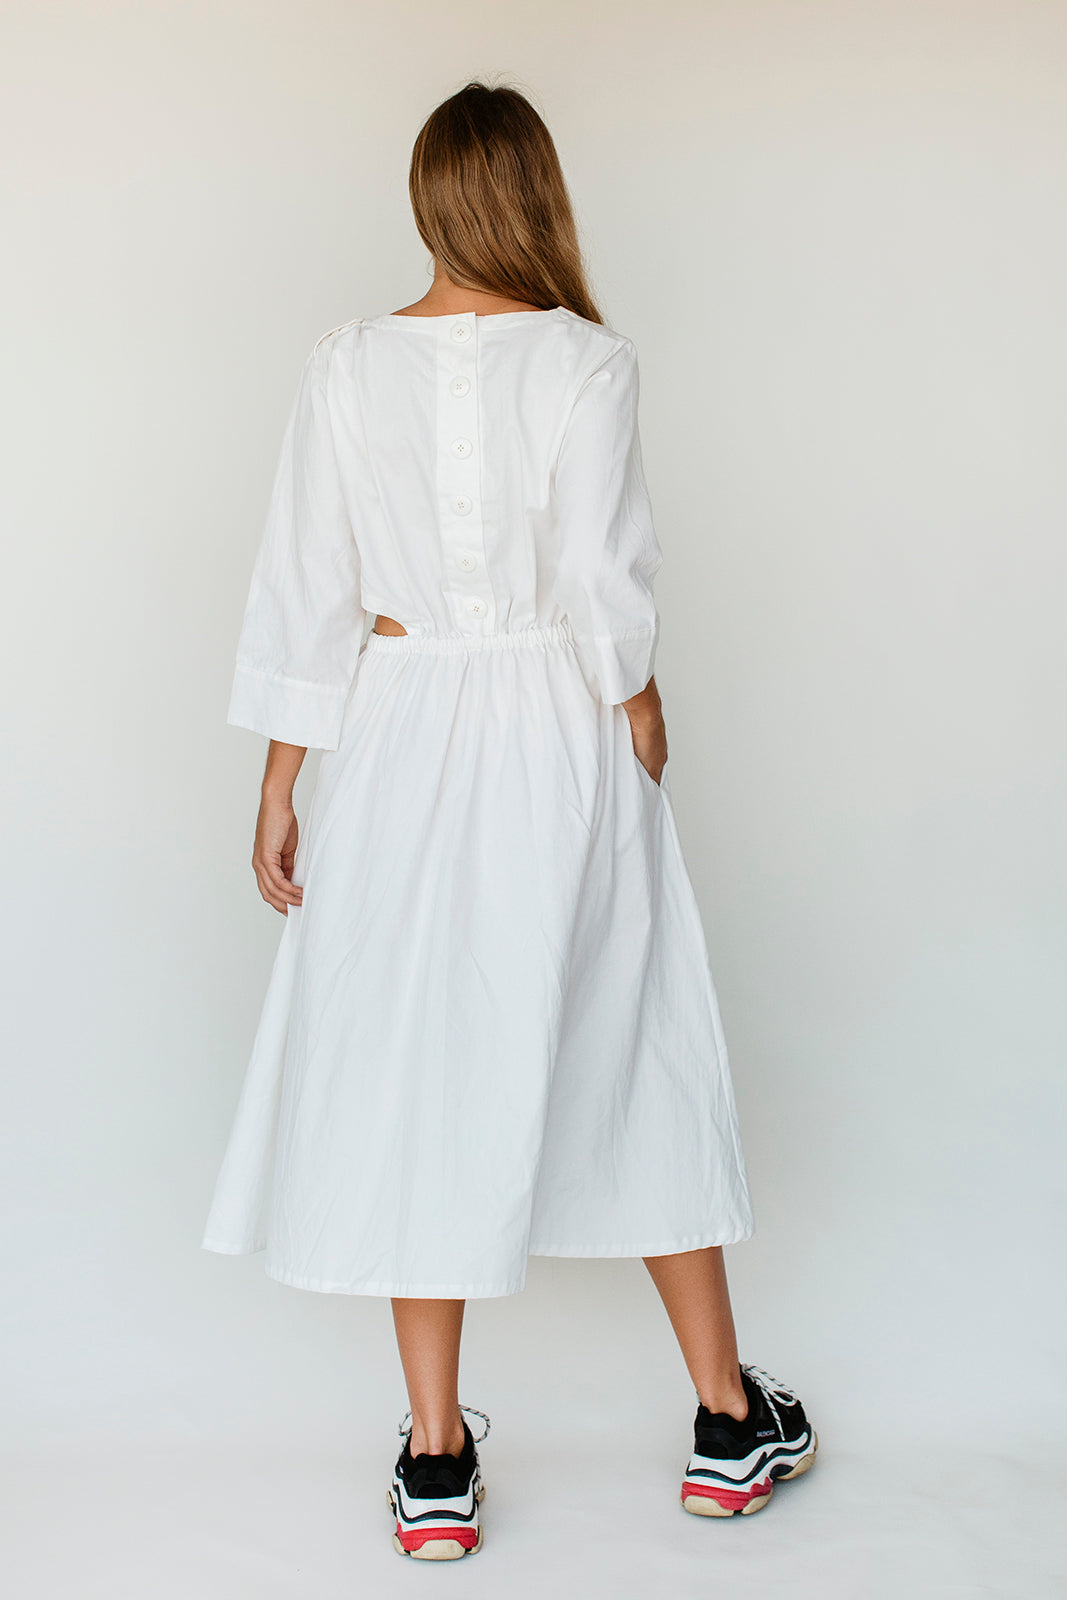 BELLE CUT OUT DRESS - OFF WHITE